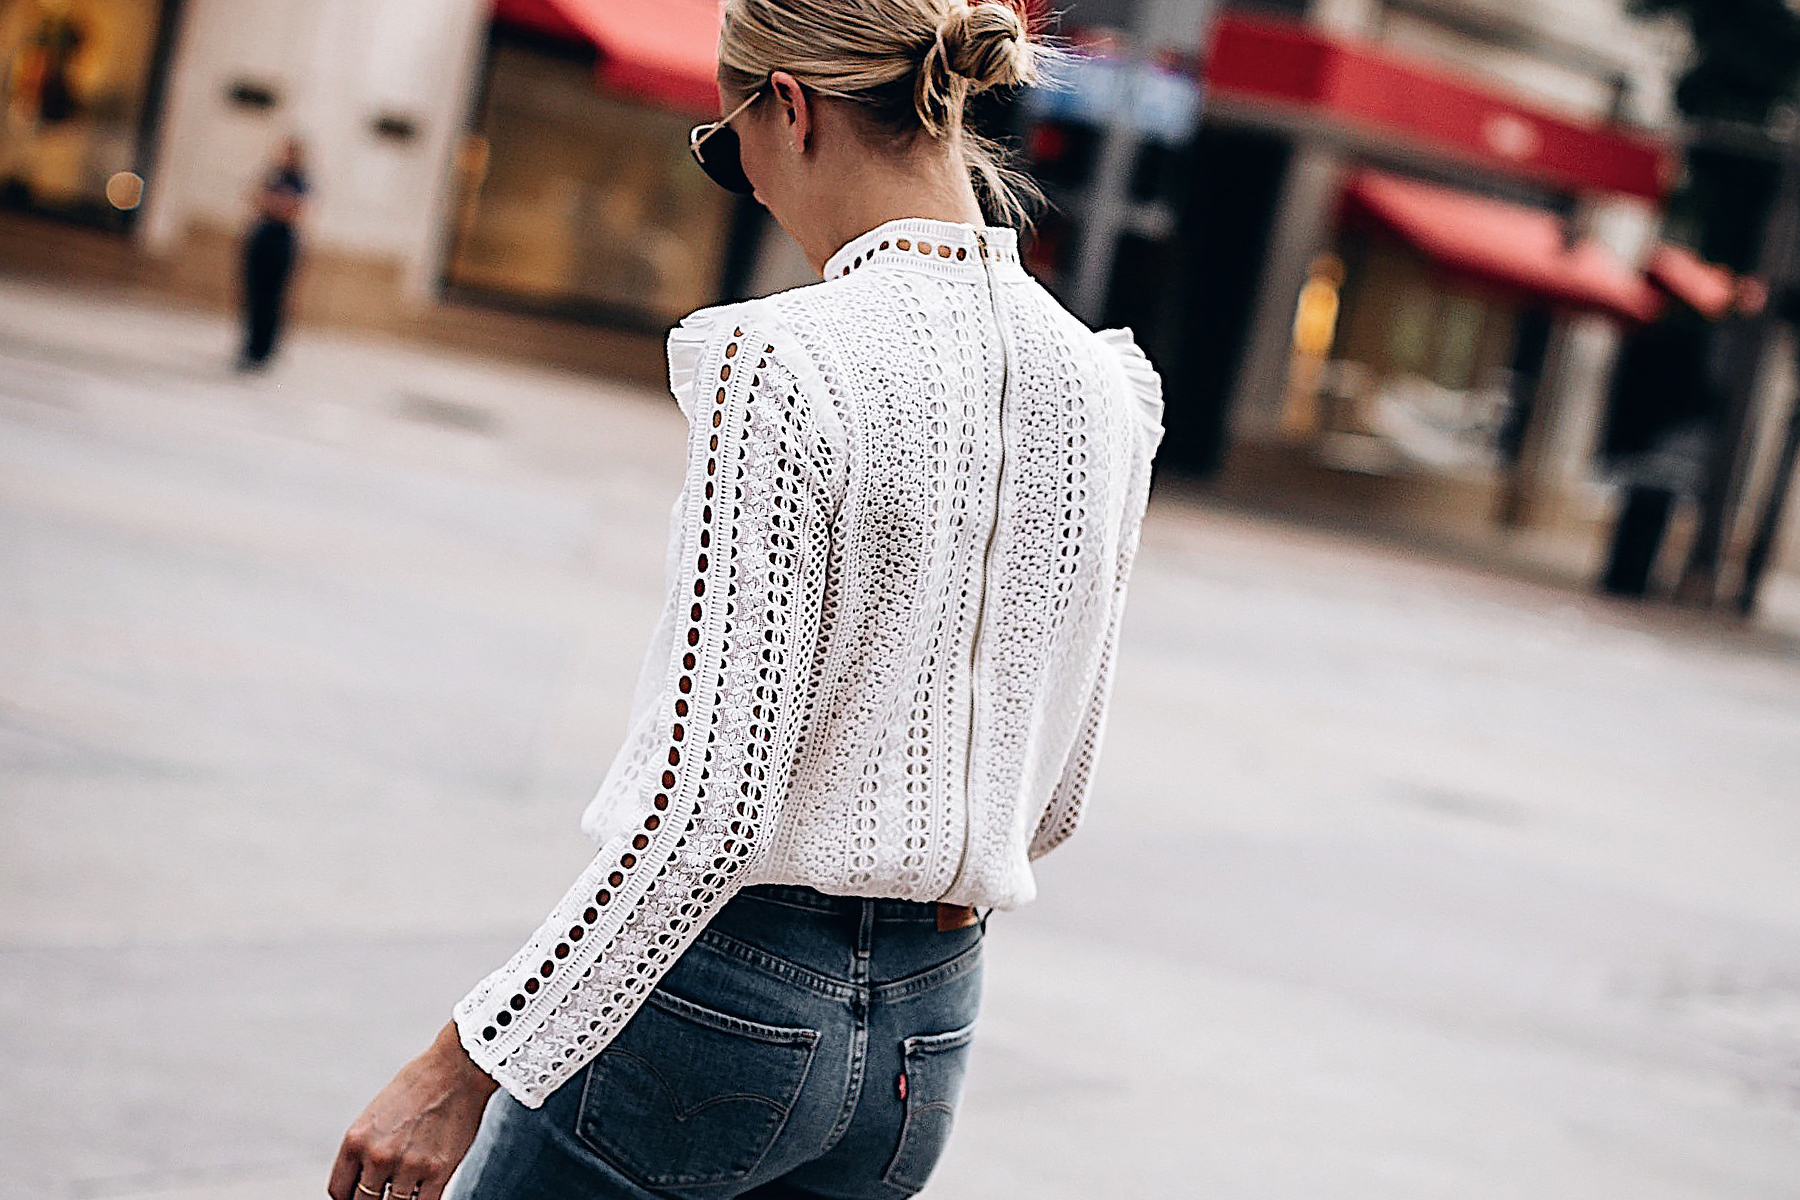 Blonde Woman Wearing Fashion Jackson Bloomingdales AQUA White Lace Ruffle Top Levis 721 Skinny Jeans Fashion Jackson San Diego Fashion Blogger Street Style